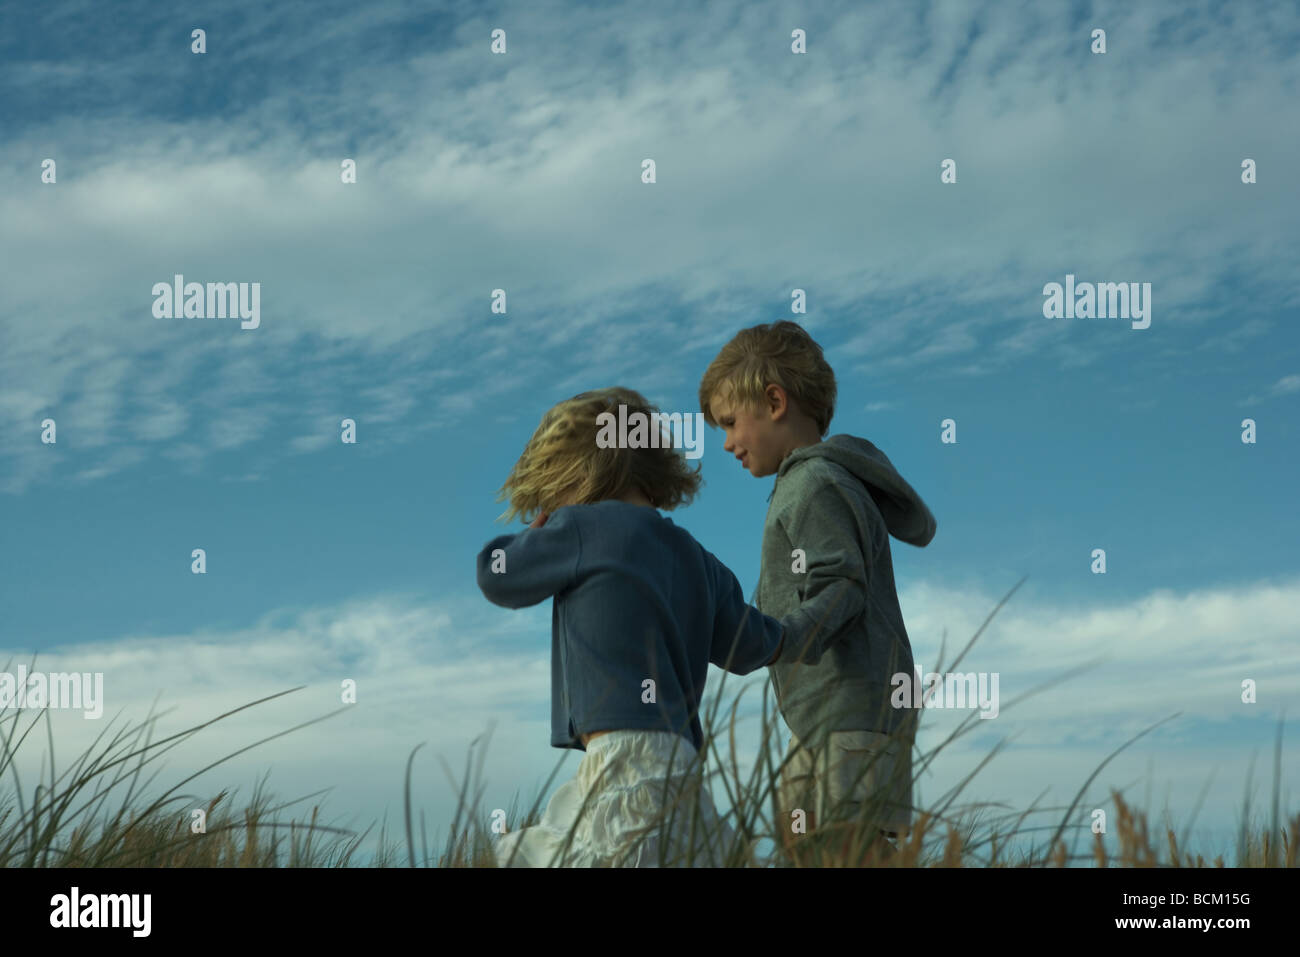 Boy and girl walking side by side through tall grass, holding hands - Stock Image